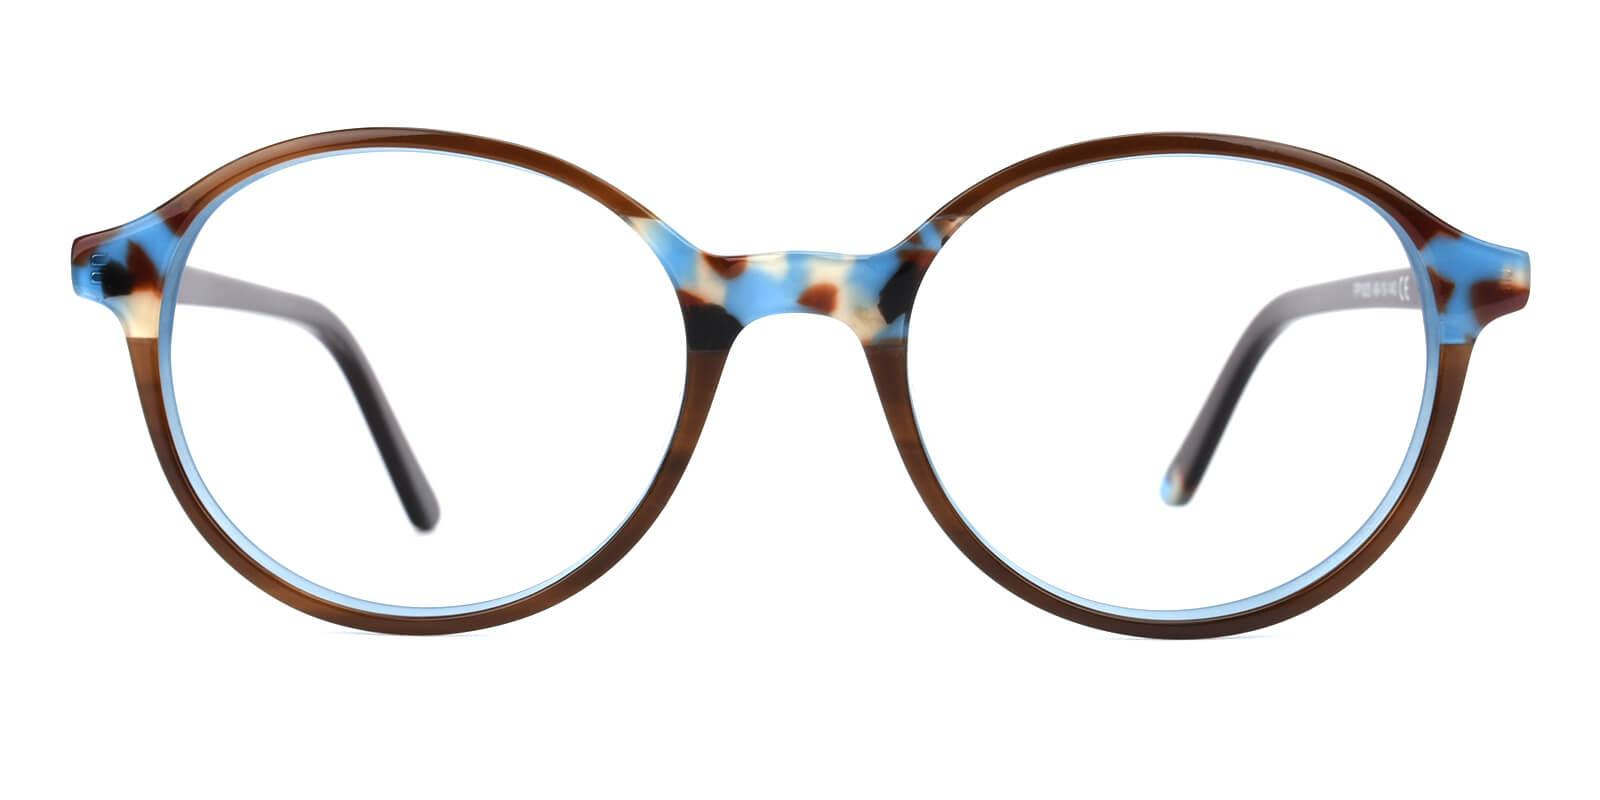 Giselle-Brown-Oval-Acetate-Eyeglasses-additional2